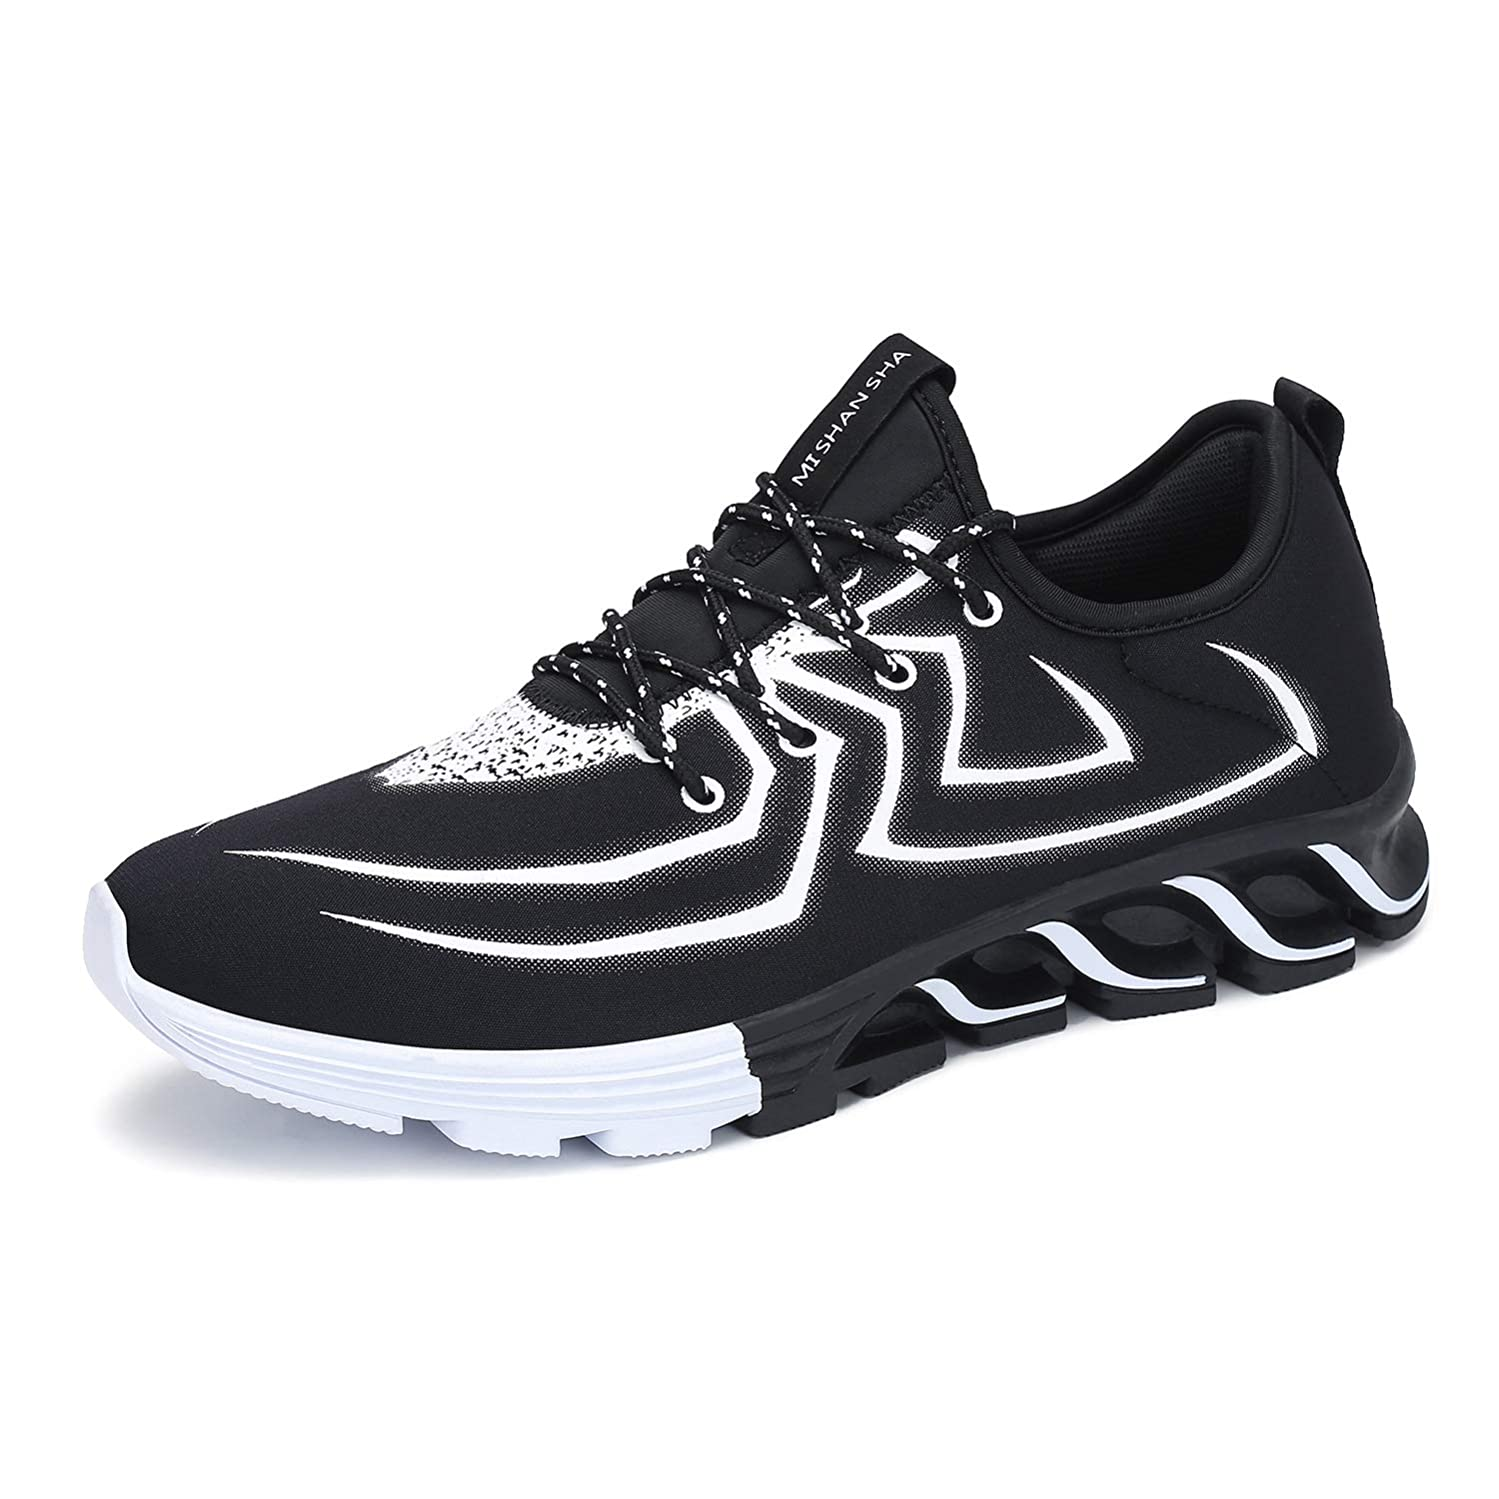 Men's Fashion Casual Sneaker Breathable Walking Tennis Athletic Running Shoes